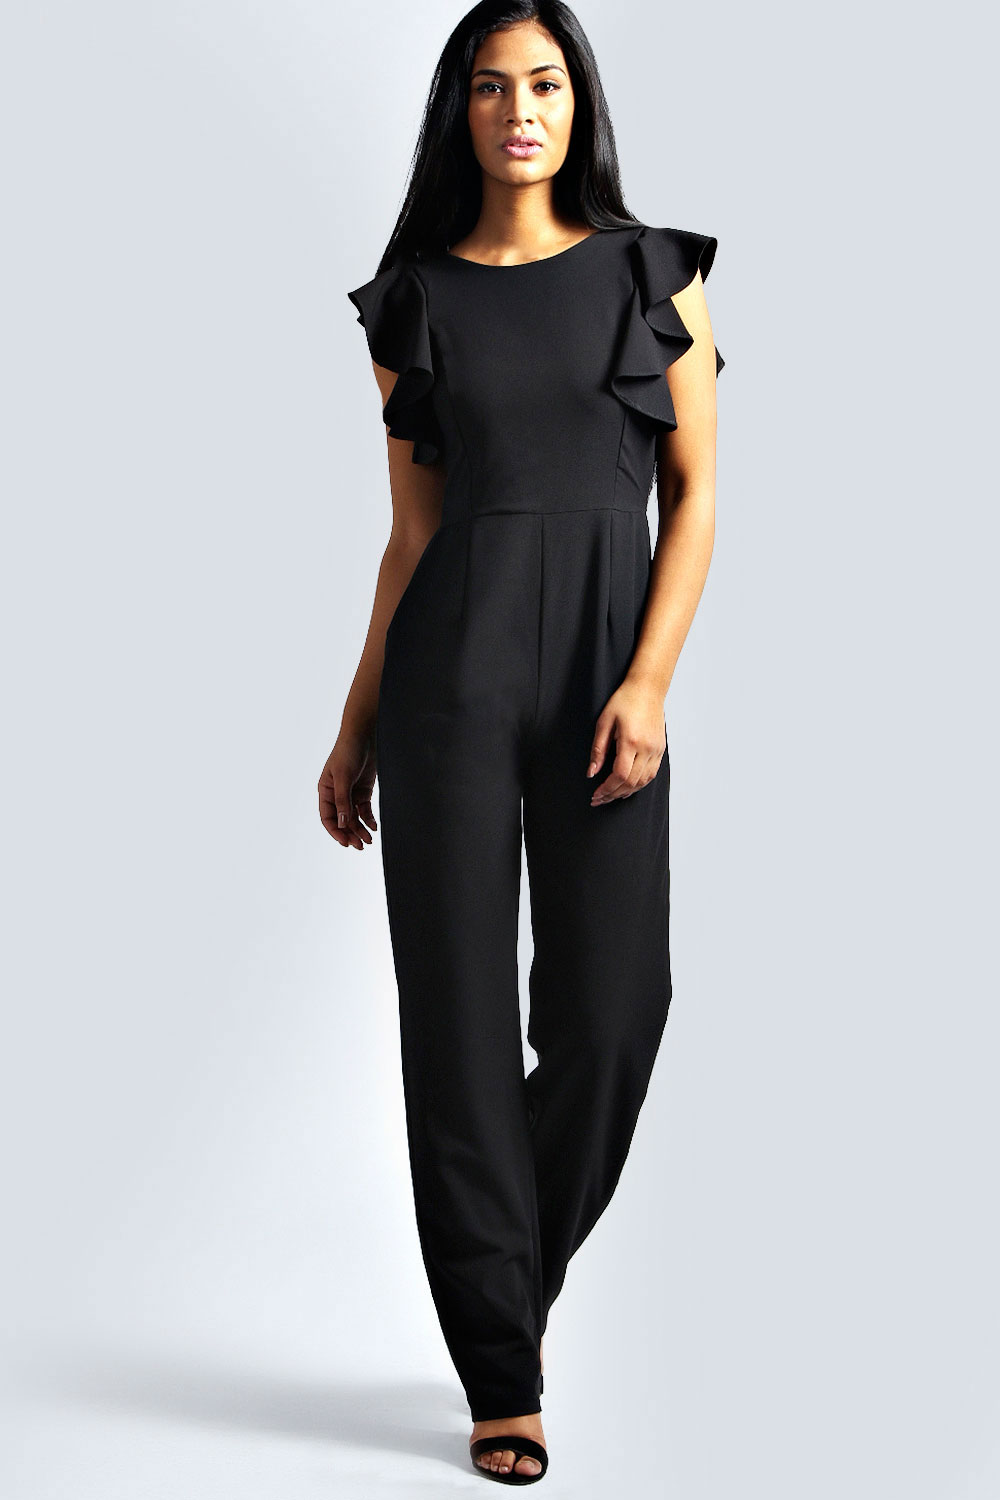 Boohoo Womens Petite Gianna Woven Frill Jumpsuit Playsuit All In One Trousers